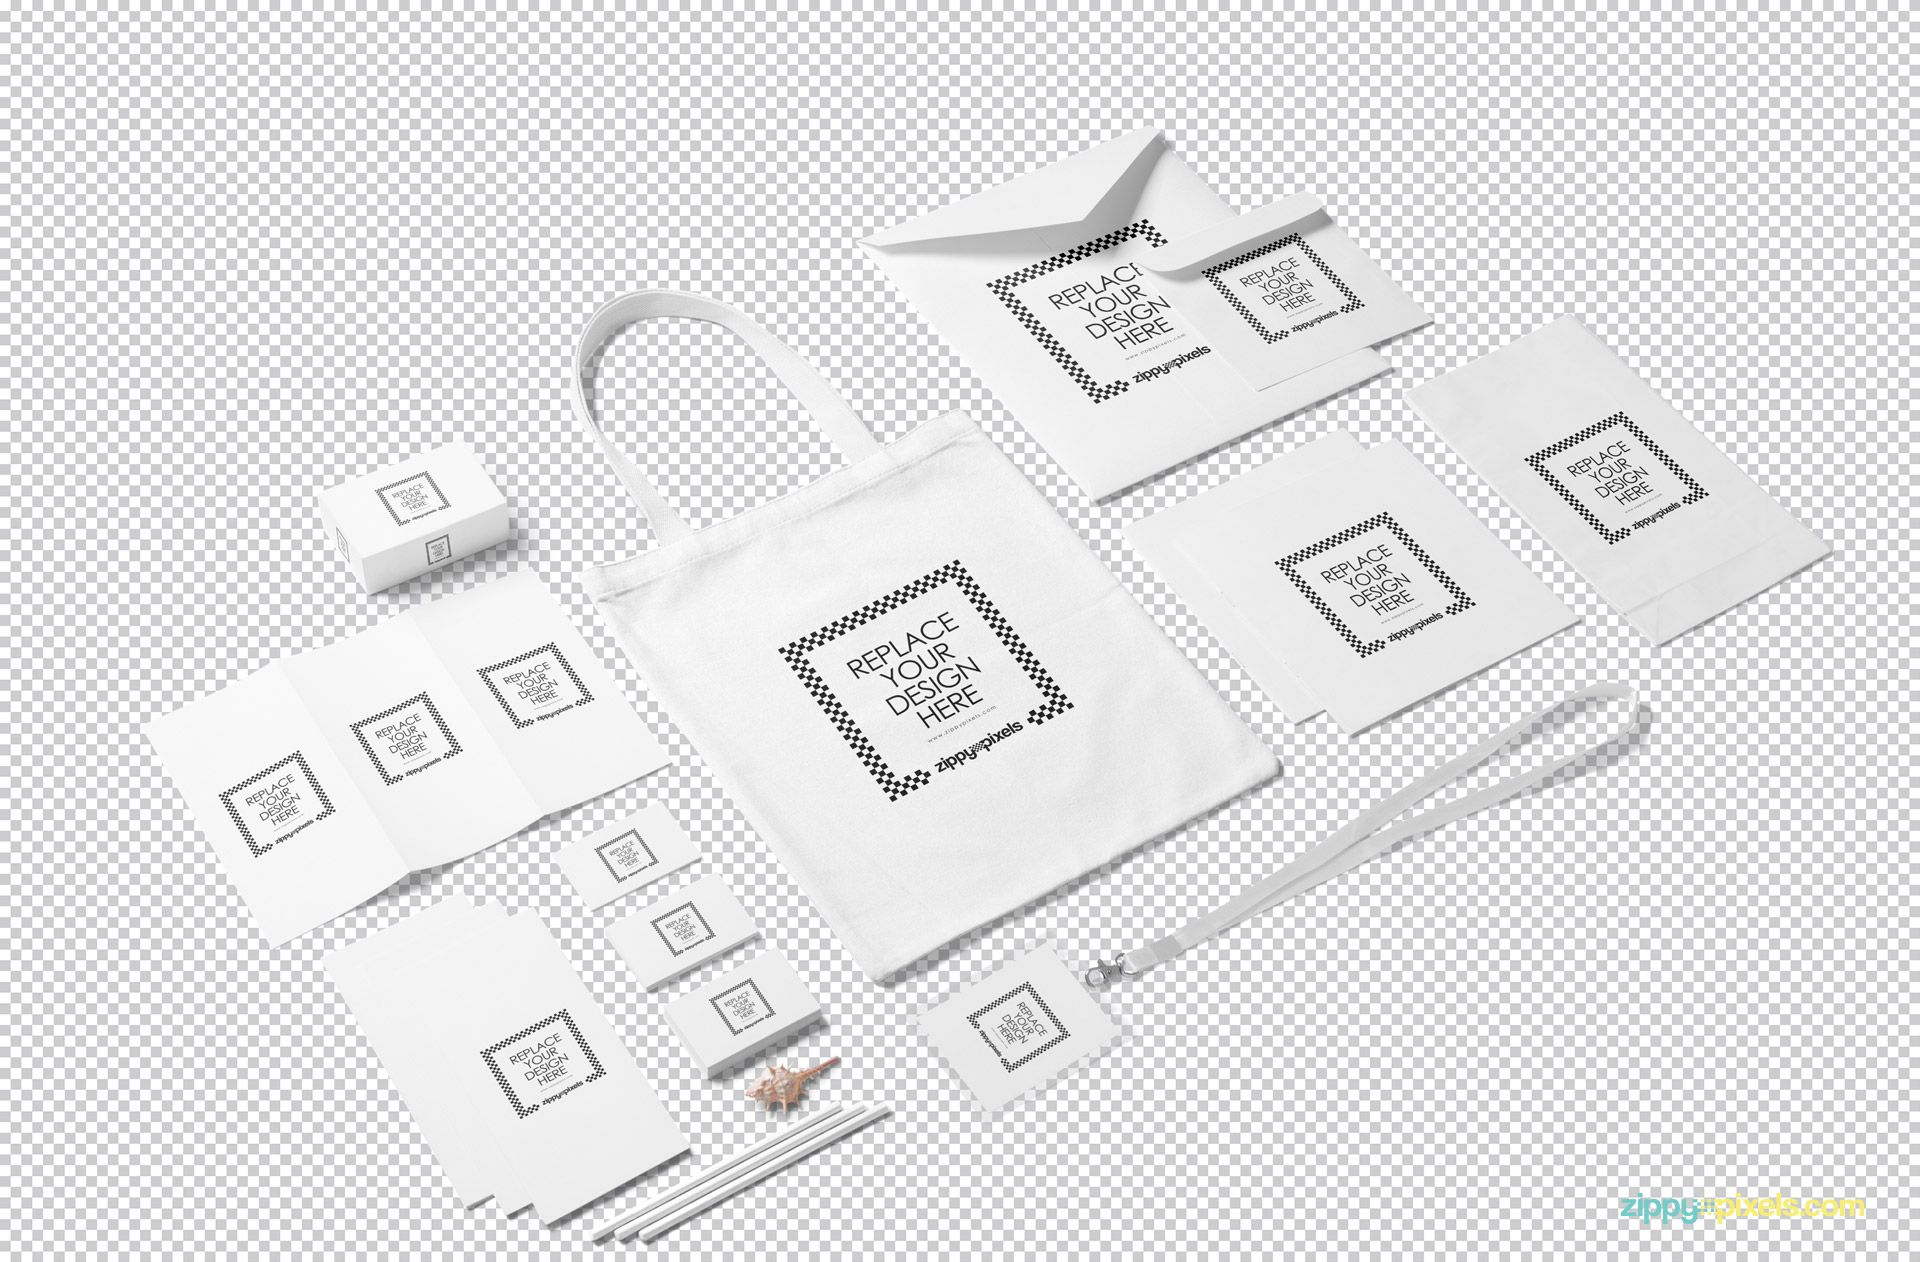 Editable PSD of the stationery mockup.